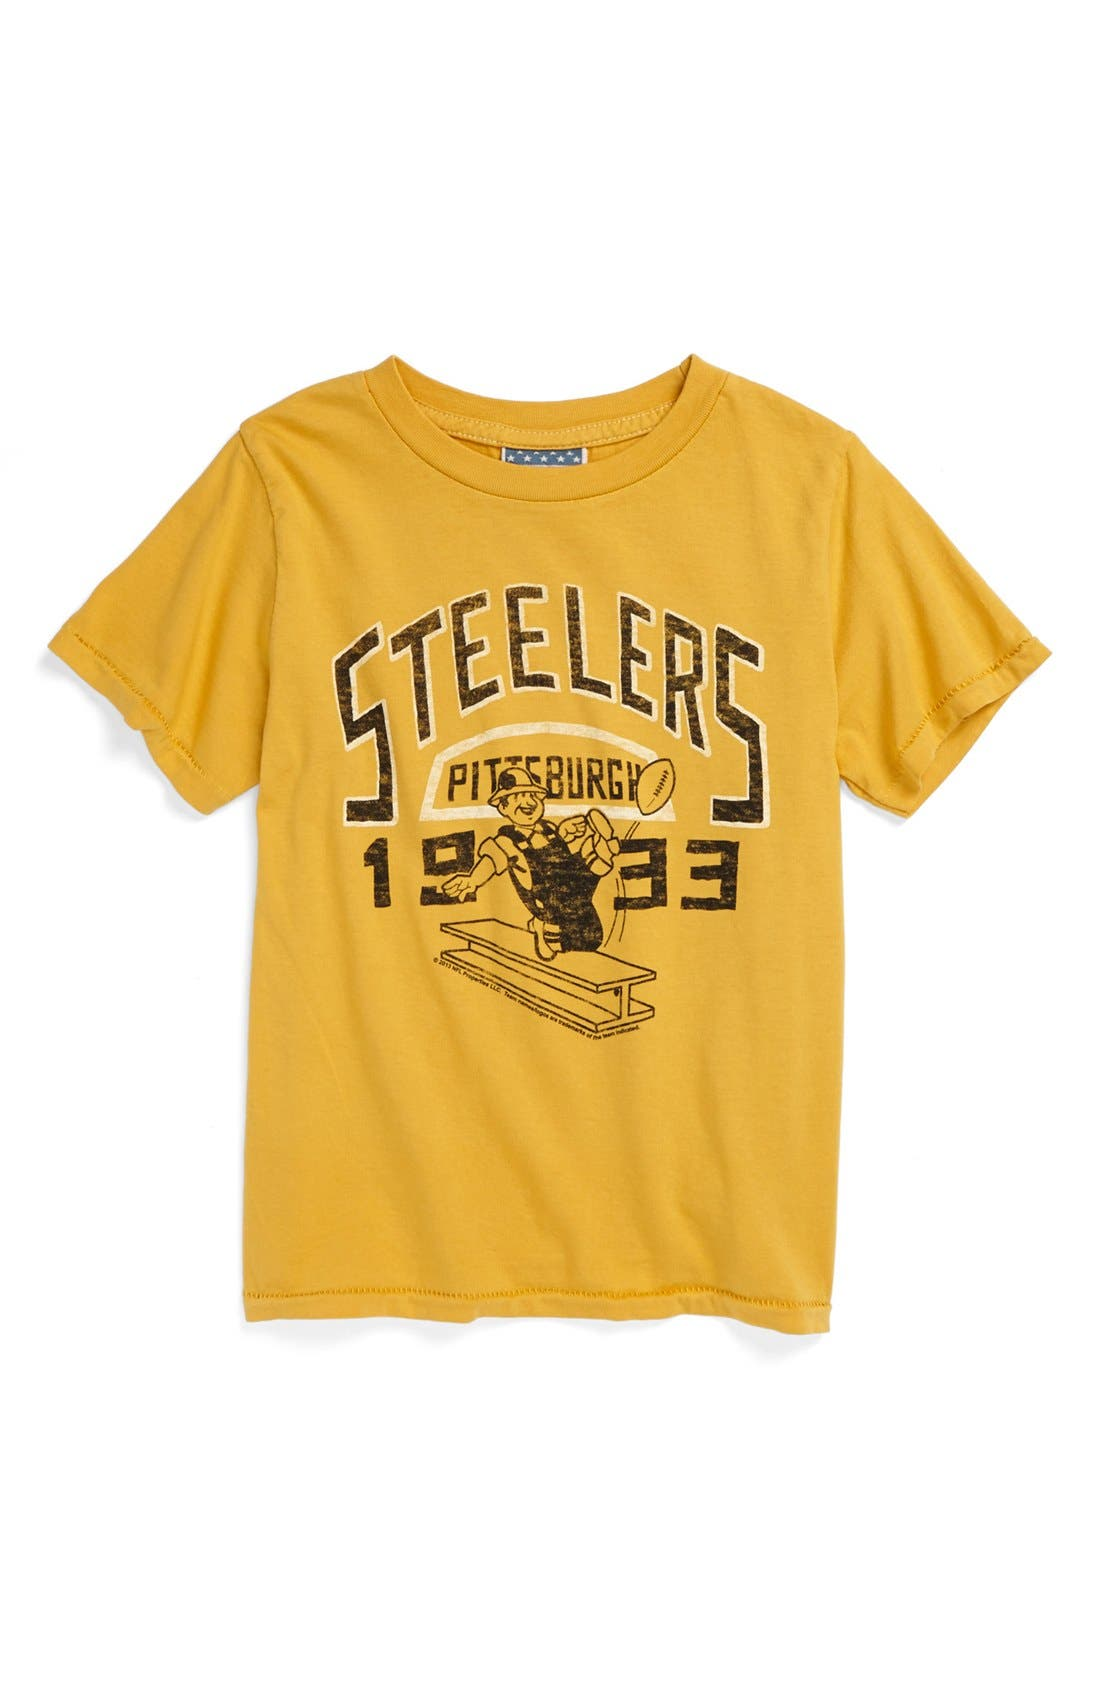 Main Image - Junk Food 'Pittsburgh Steelers' T-Shirt (Toddler Boys)